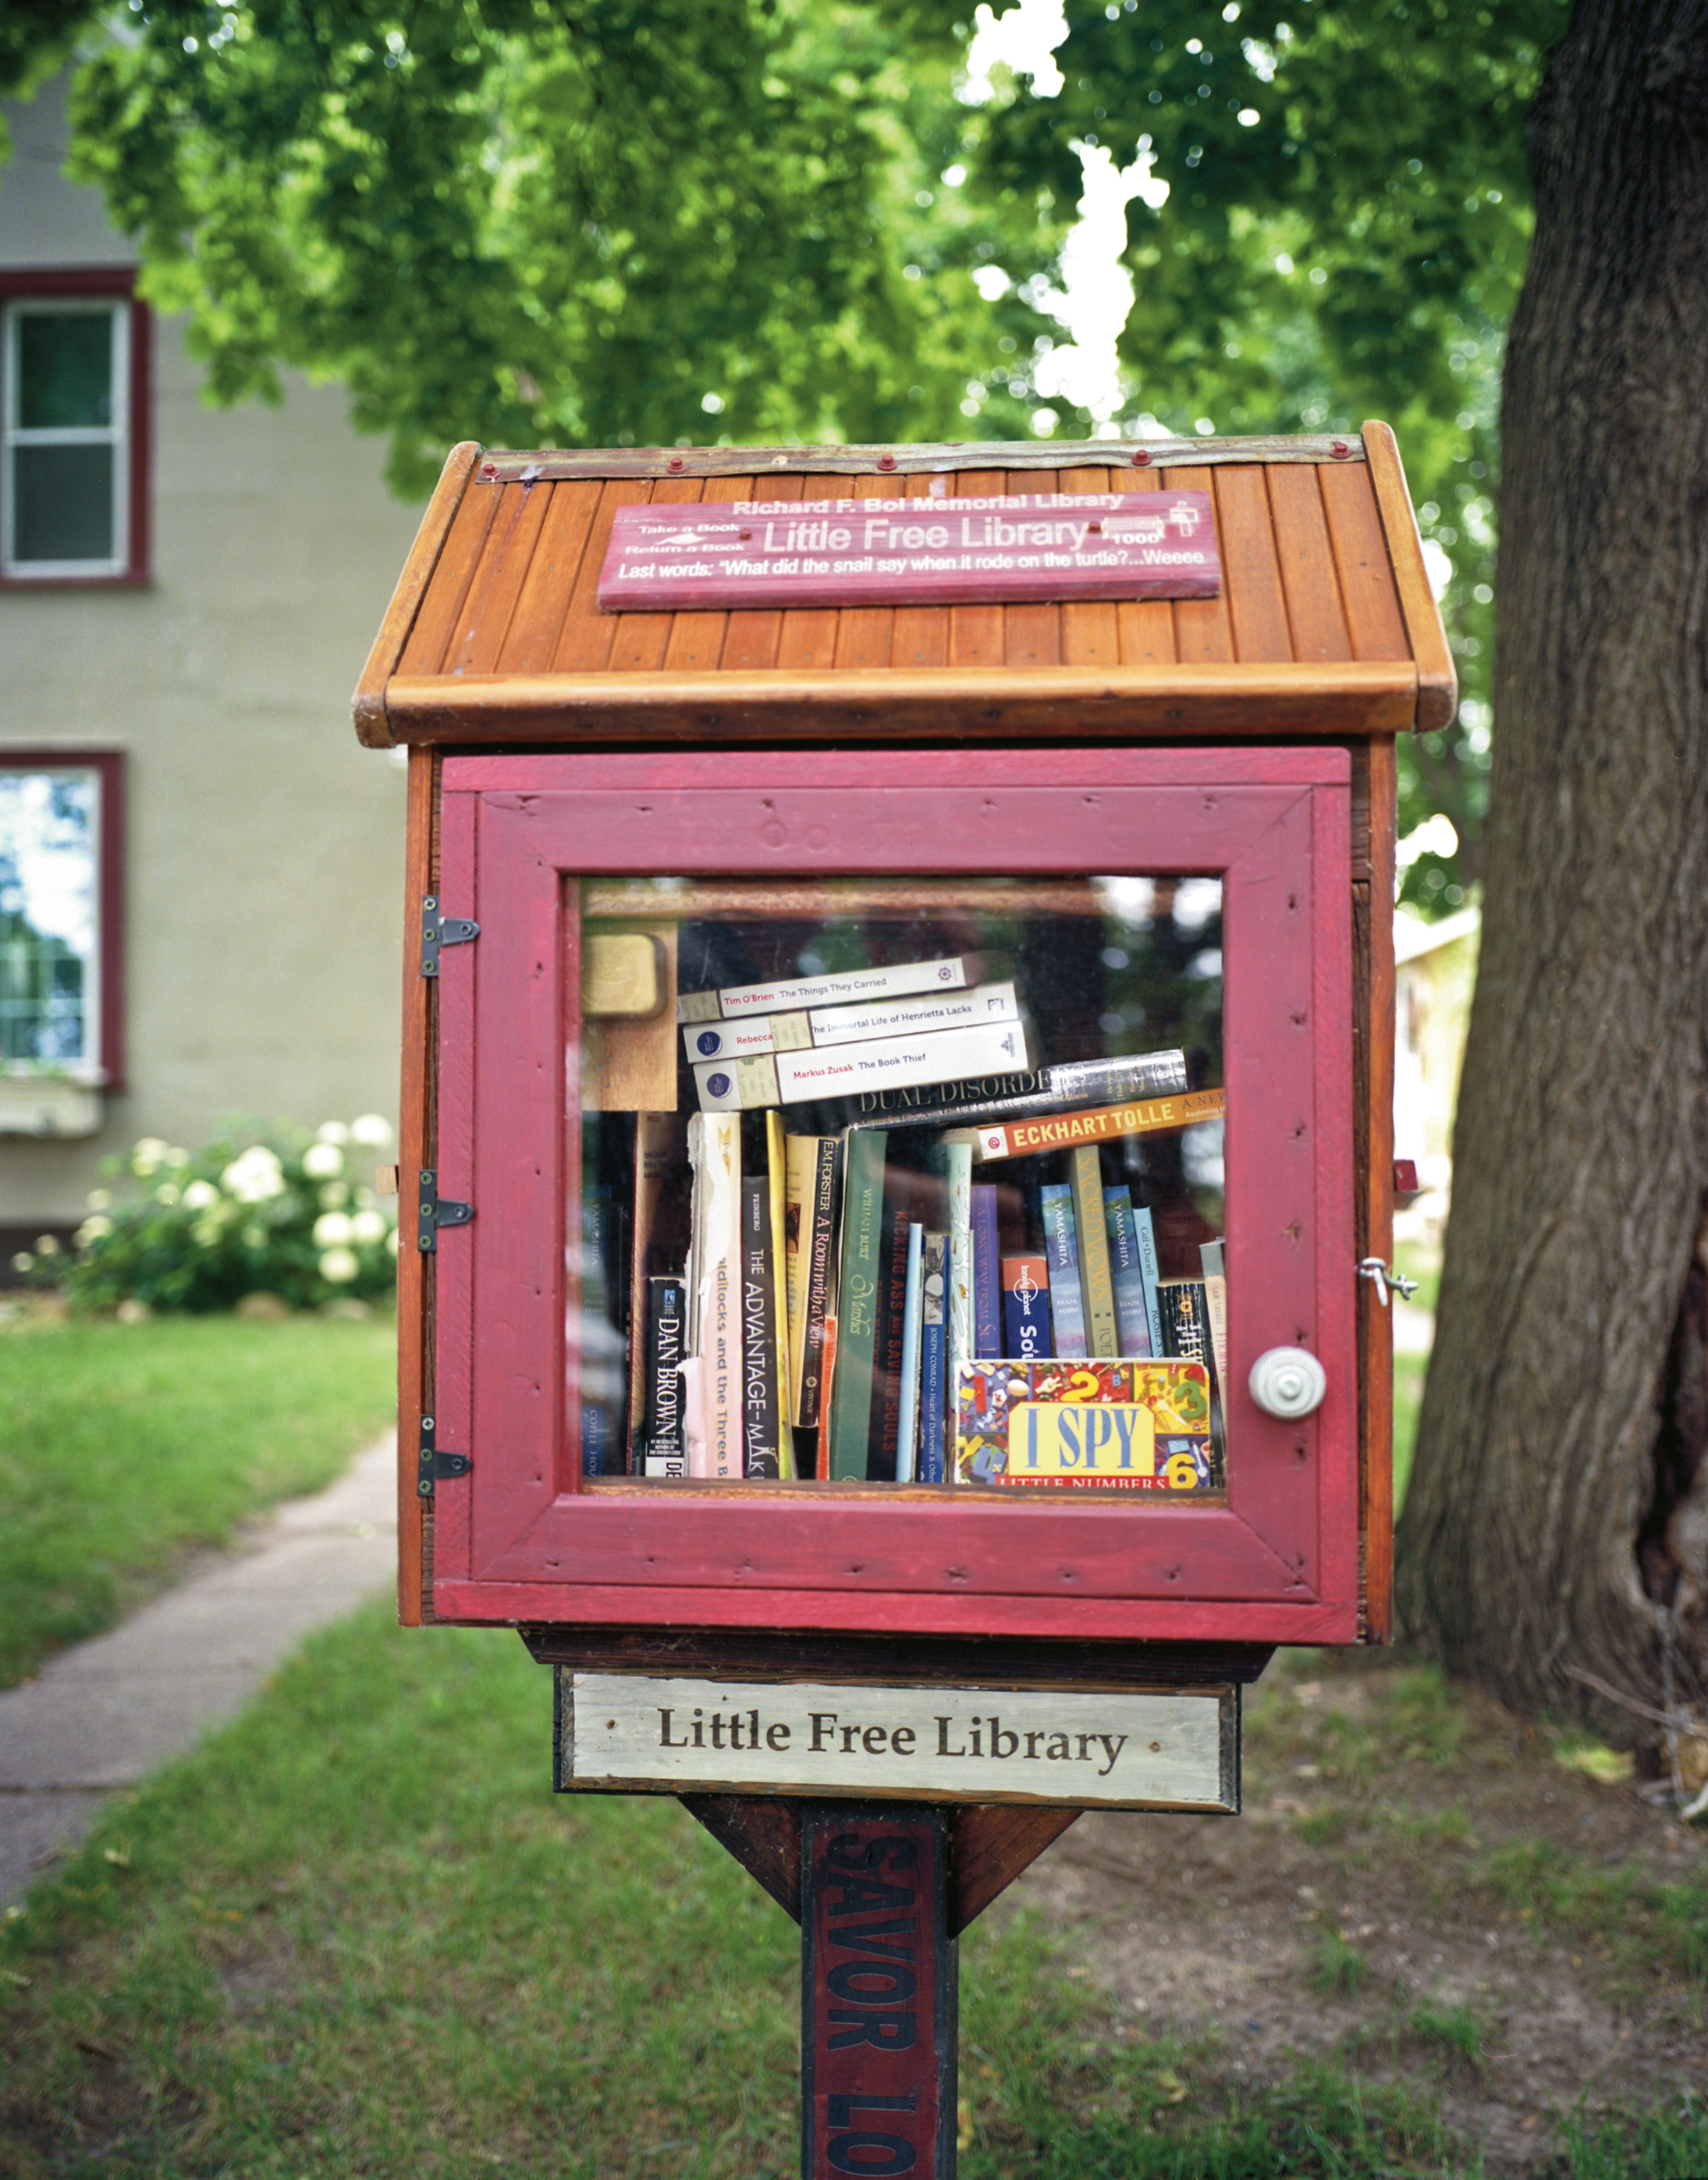 Richard F. Boi Memorial Library's first Little Free Library in Hudson, Wis. (2012)